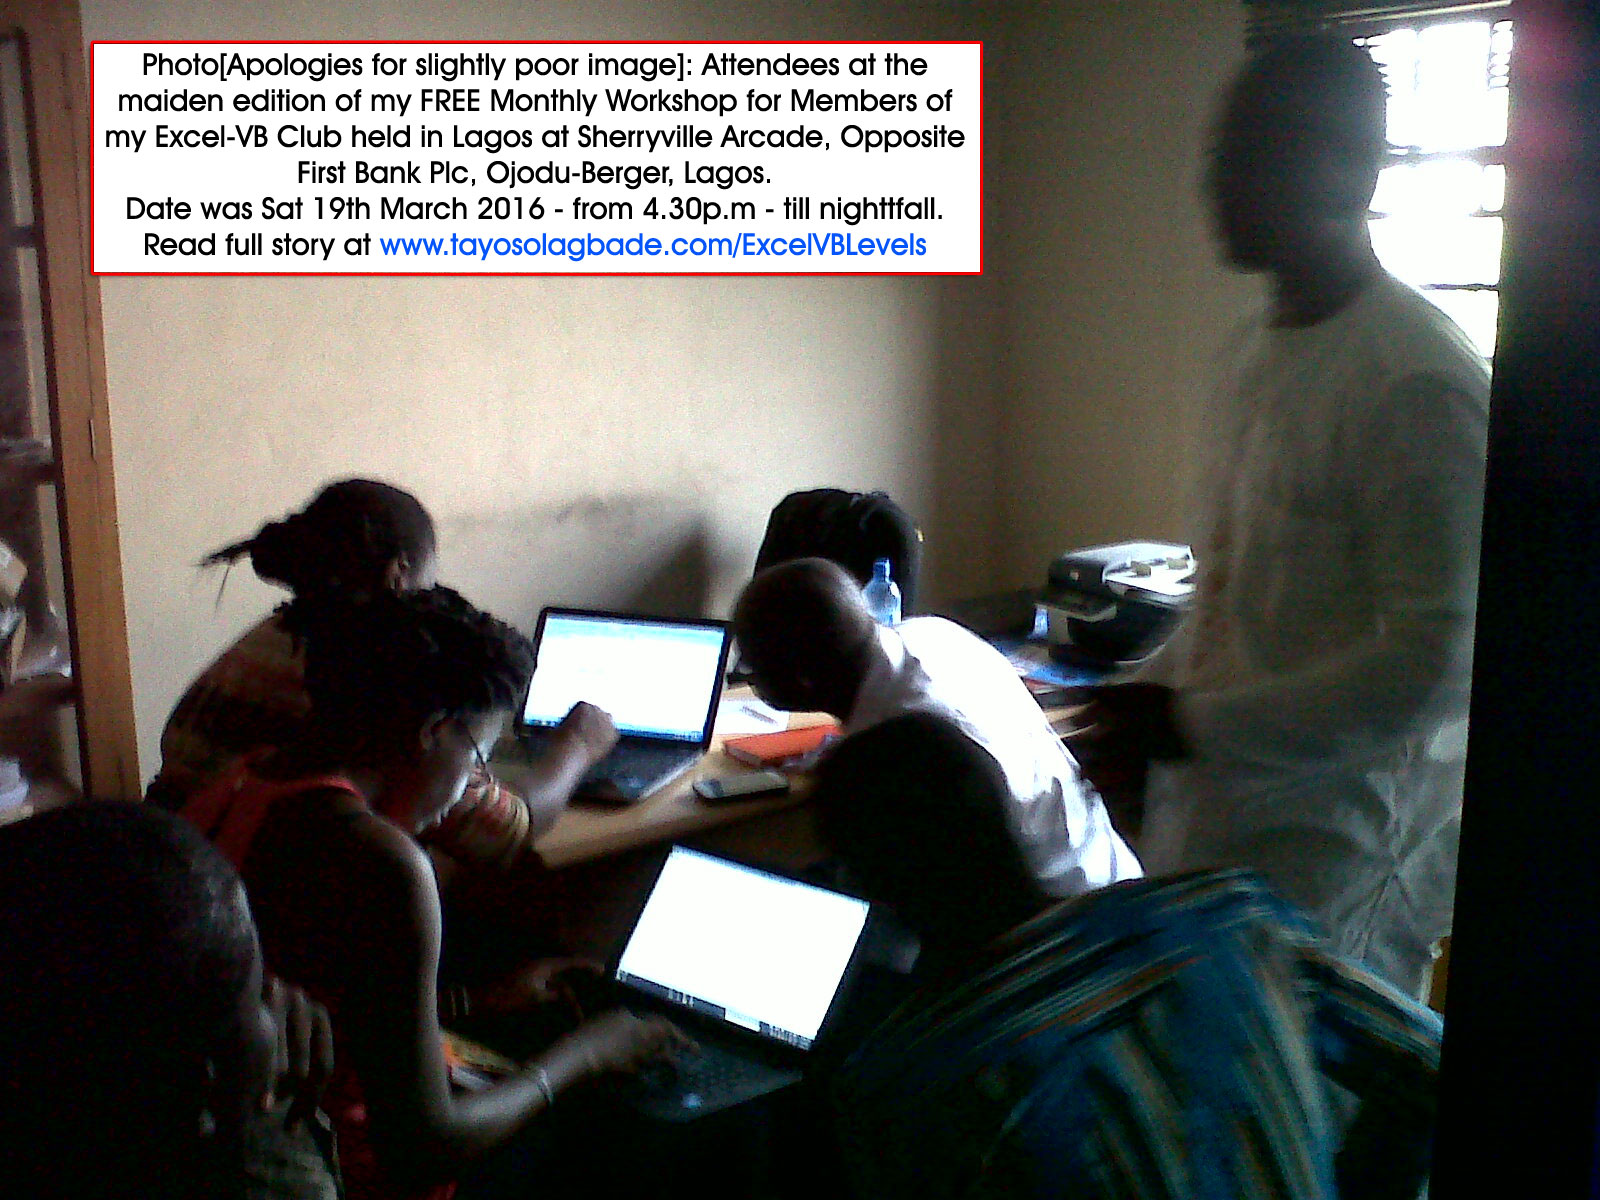 Photo[Apologies for slightly poor image]: Attendees at the maiden edition of my FREE Monthly Workshop for Members of my Excel-VB Club held in Lagos at Sherryville Arcade, Opposite First Bank Plc, Ojodu-Berger, Lagos.